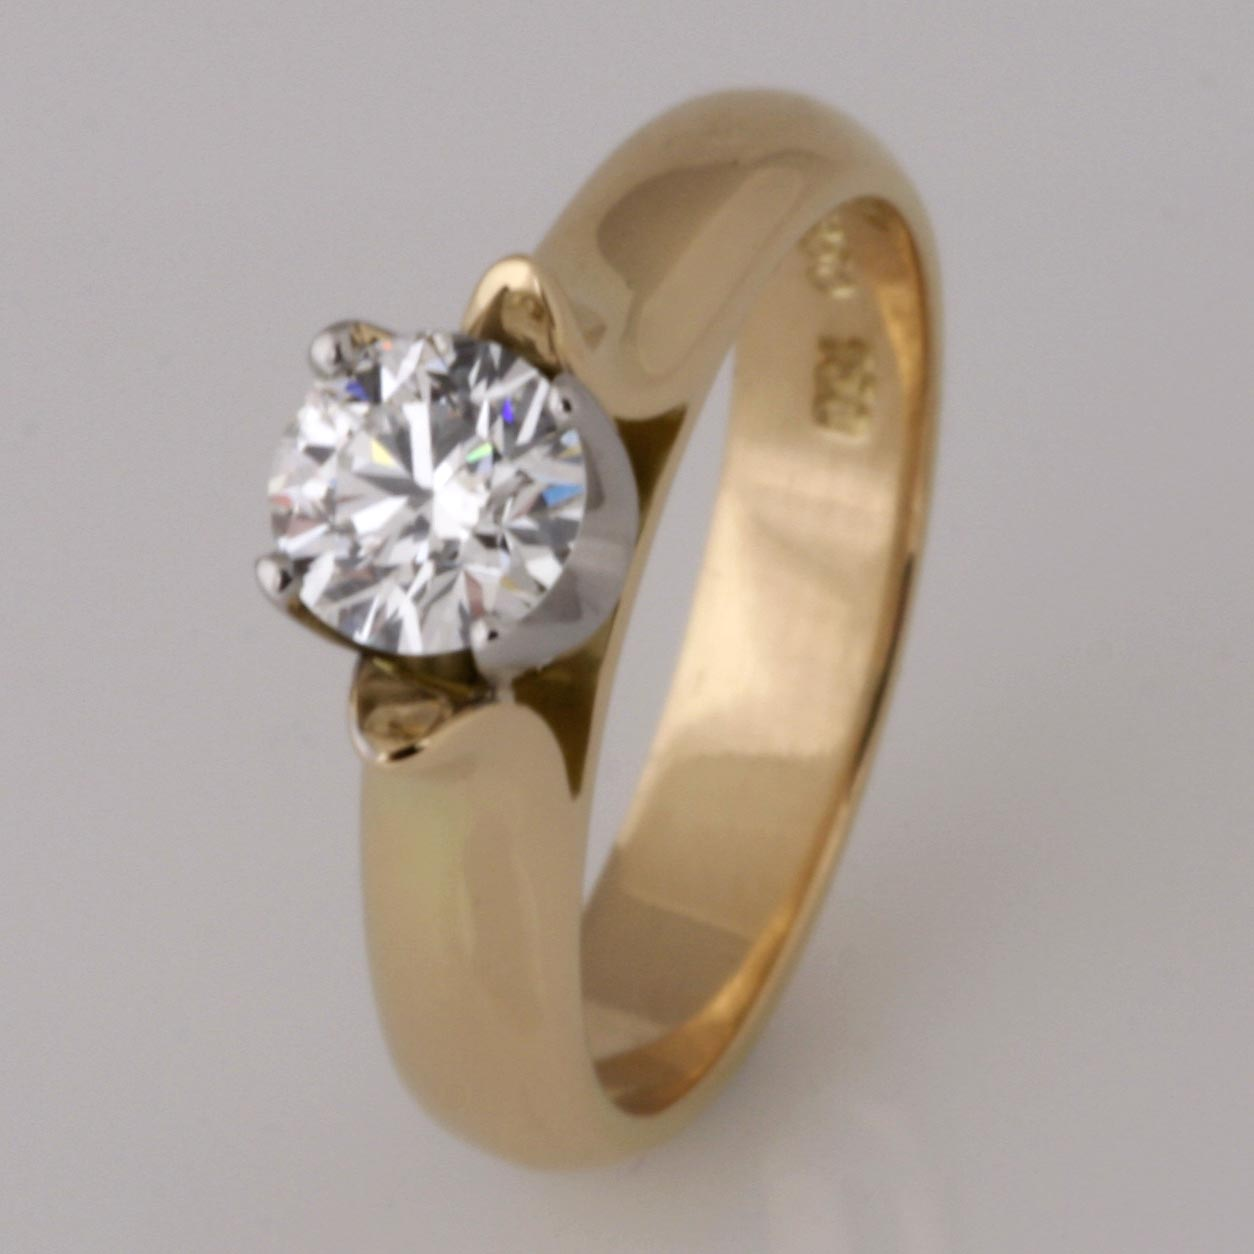 Handmade 18ct yellow gold and palladium 'Eightstar' diamond engagement ring